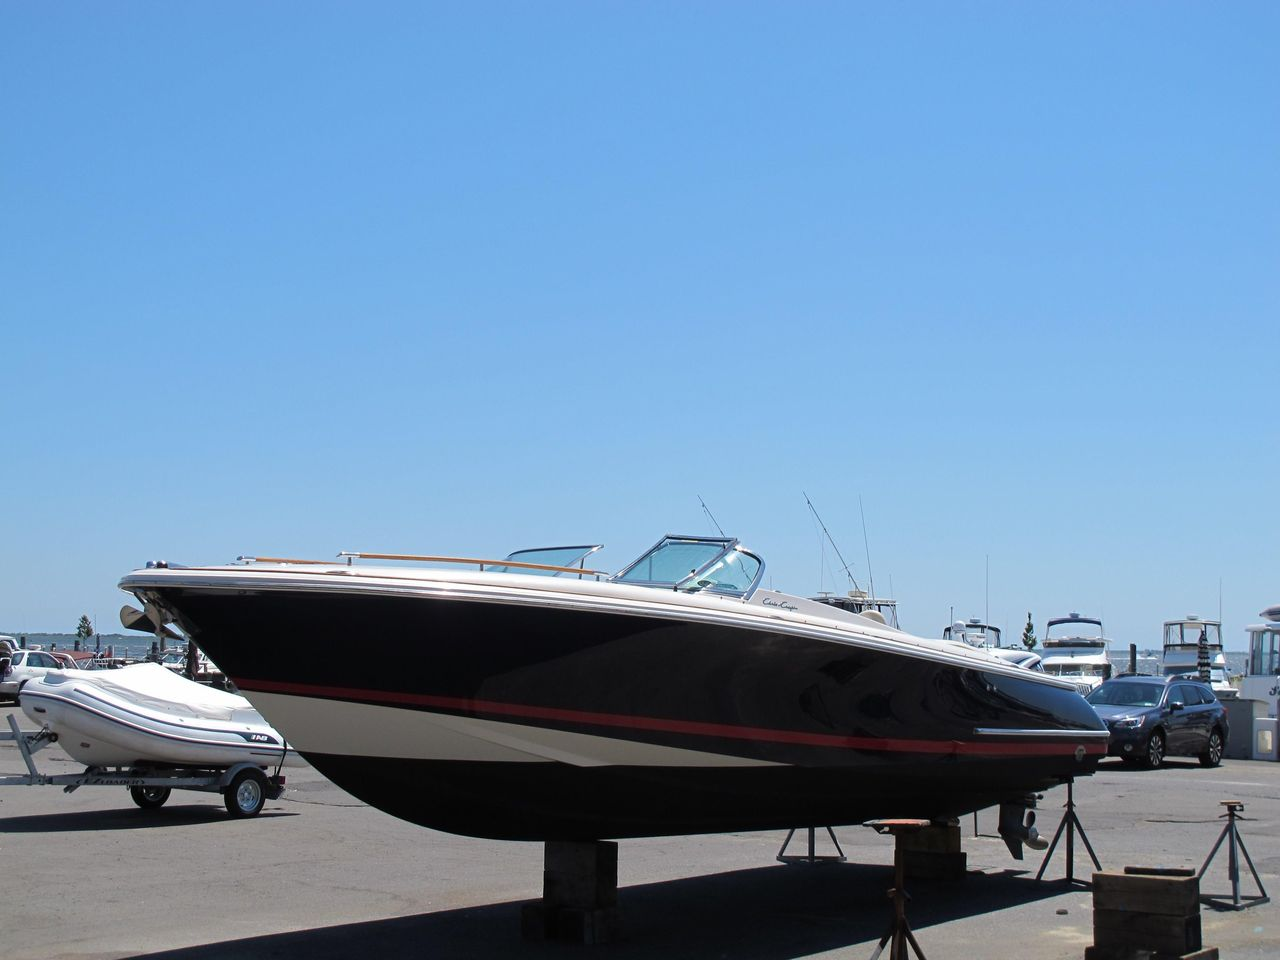 2006 Used Chris-Craft Corsair 28 High Performance Boat For